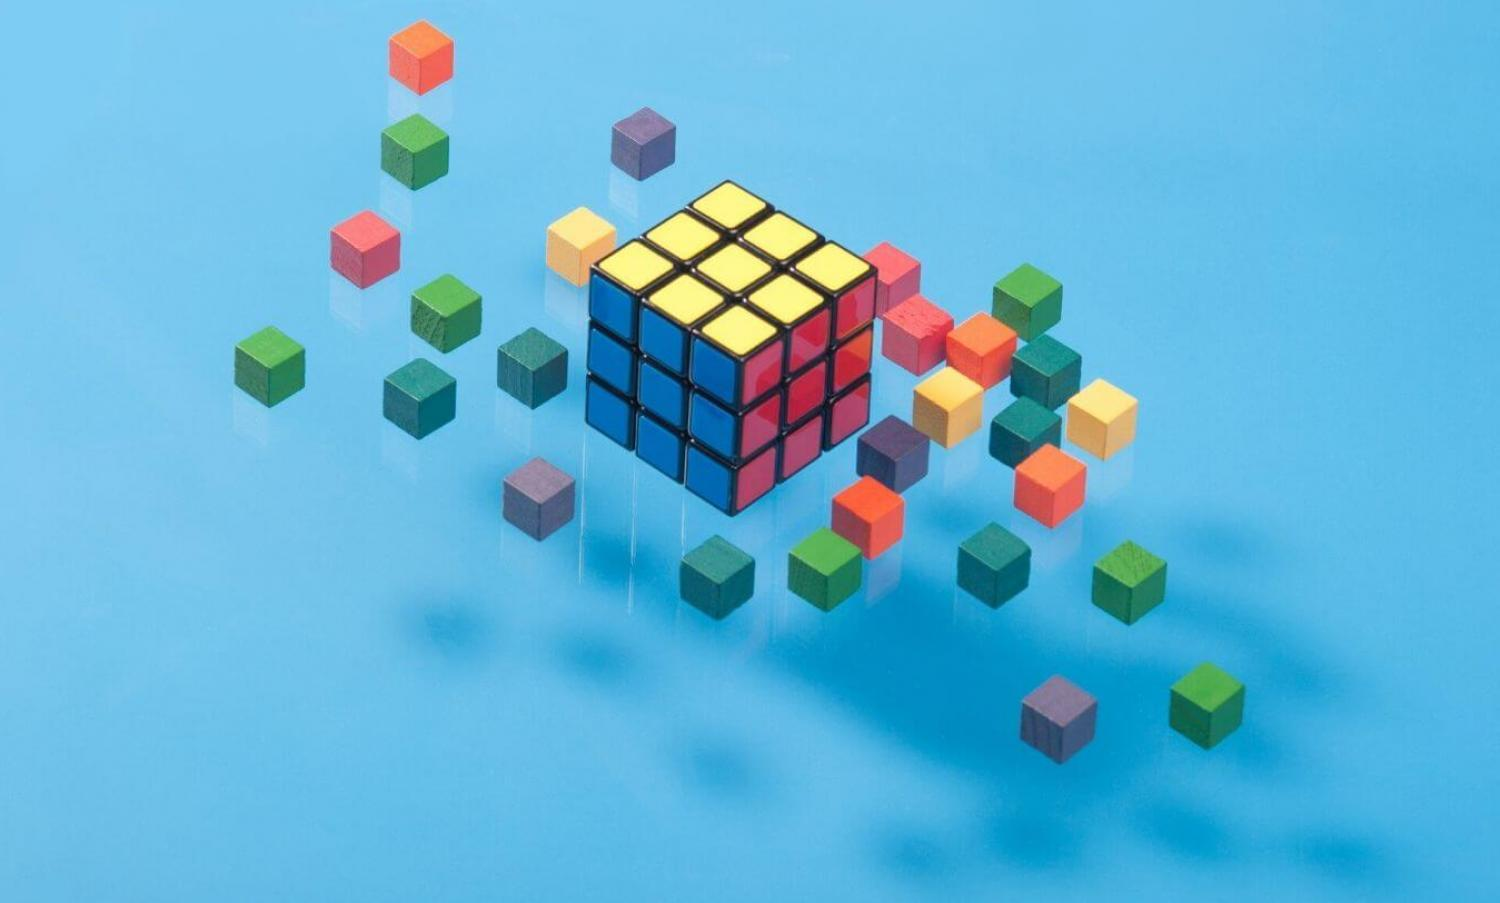 Floating cubes on blue background.